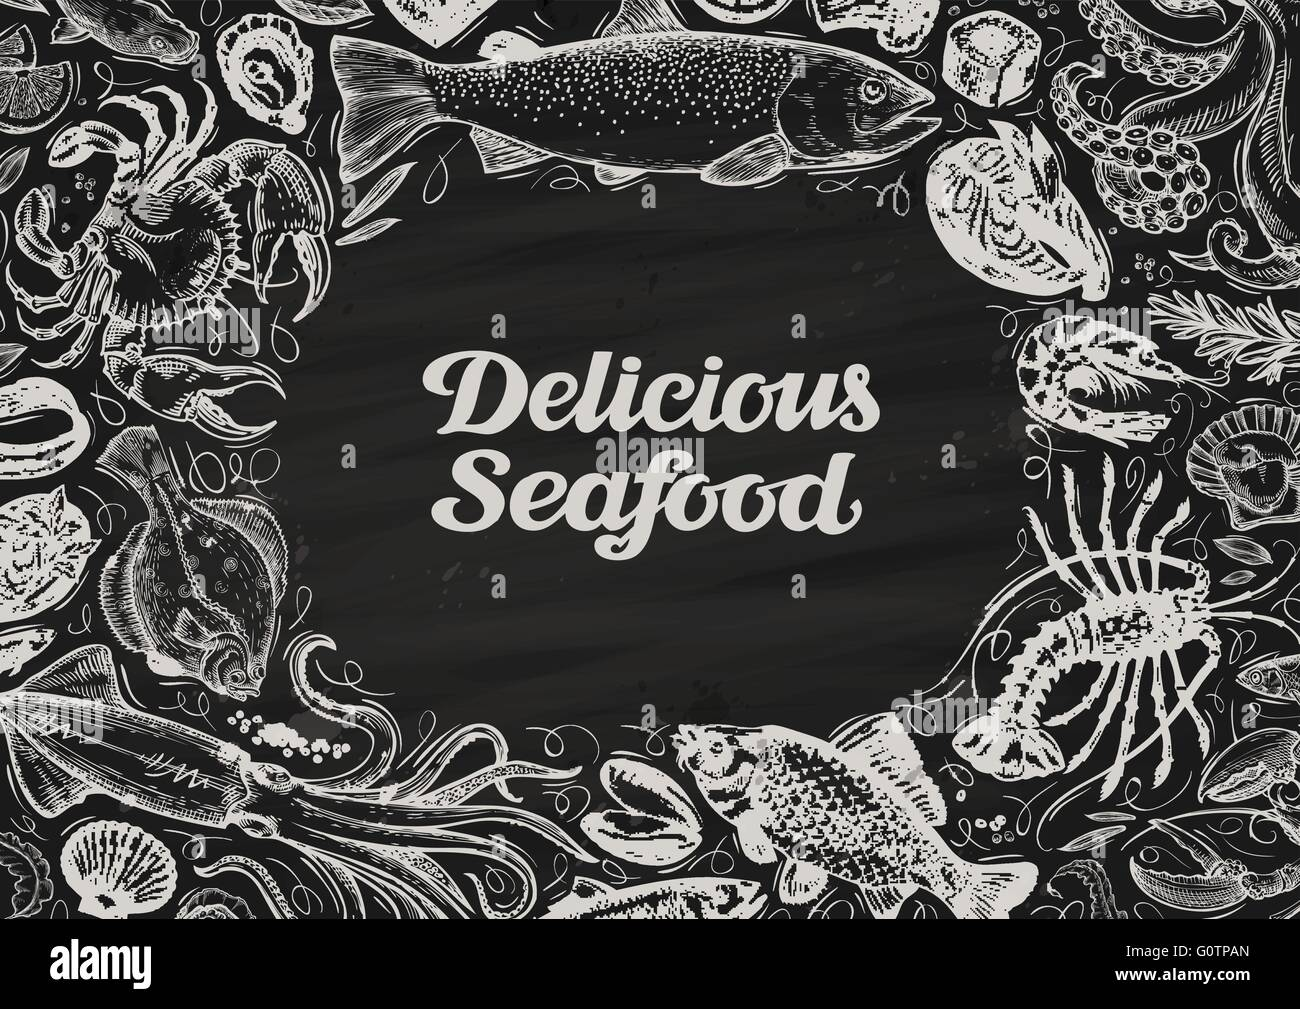 Delicious Seafood Hand Drawn Food On Chalkboard Template Design Menu Restaurant Or Cafe